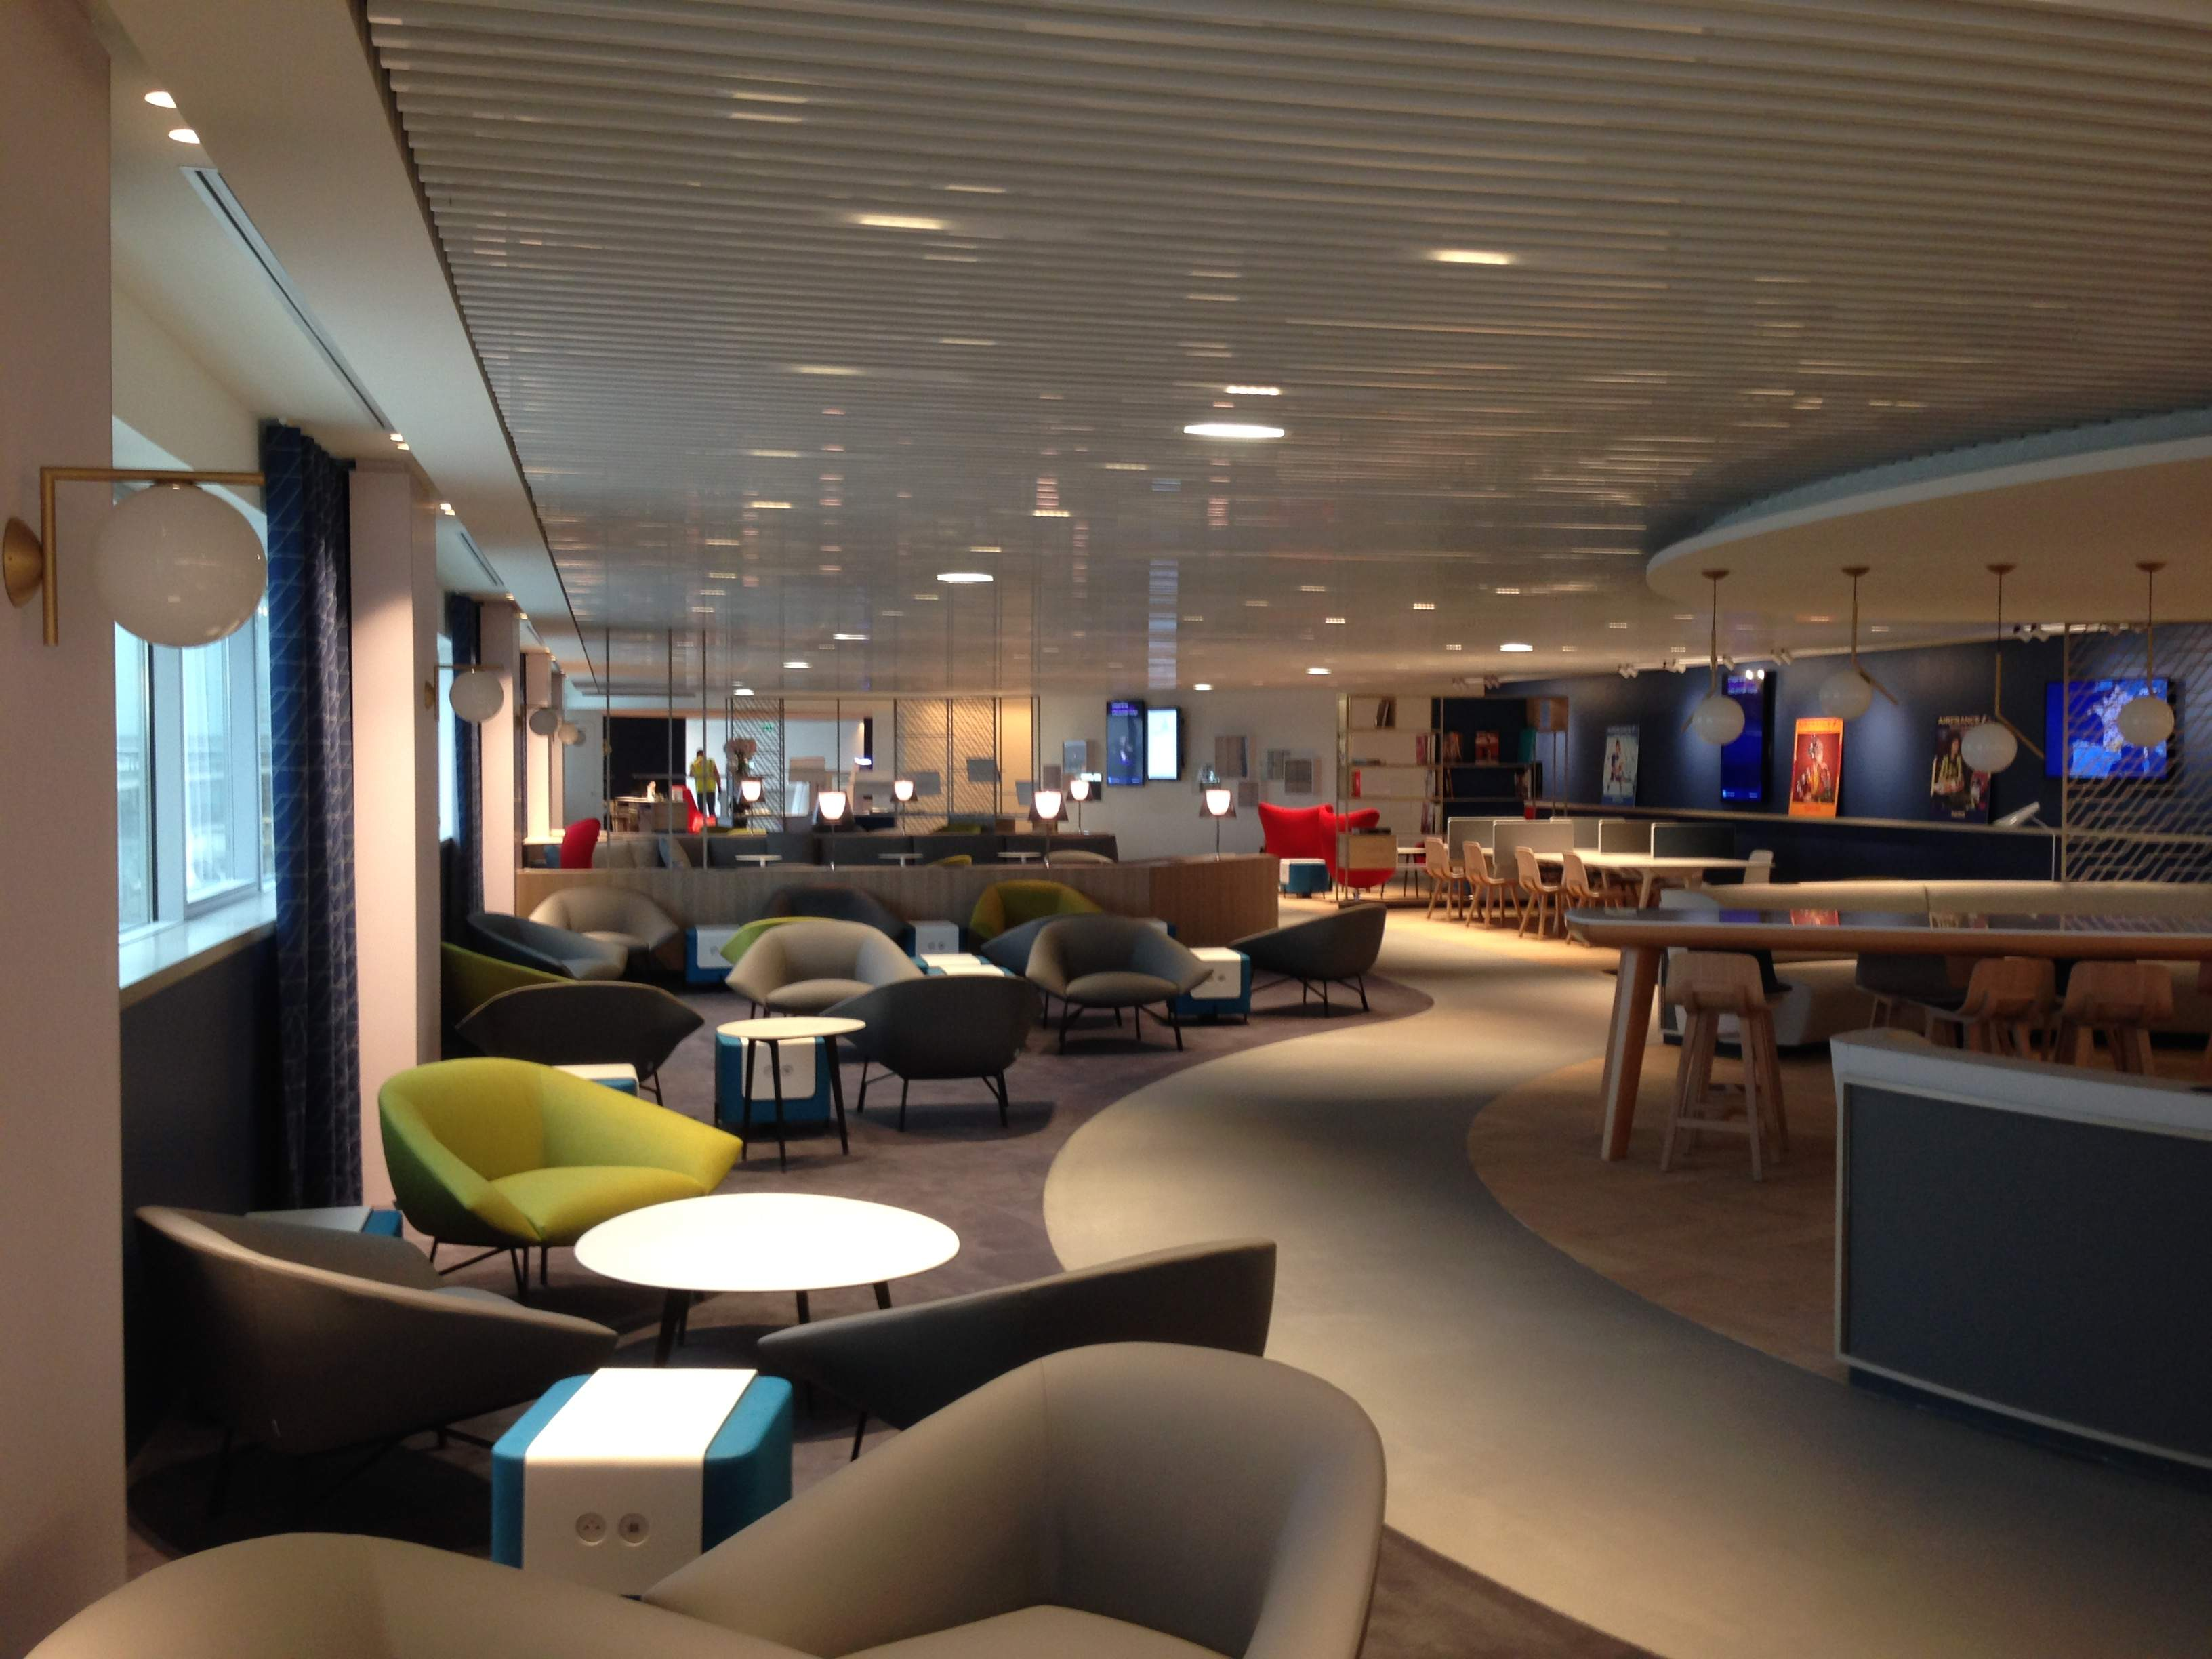 Salon Hotellerie Hotellerie Salon Air France Terminal 2g Axys